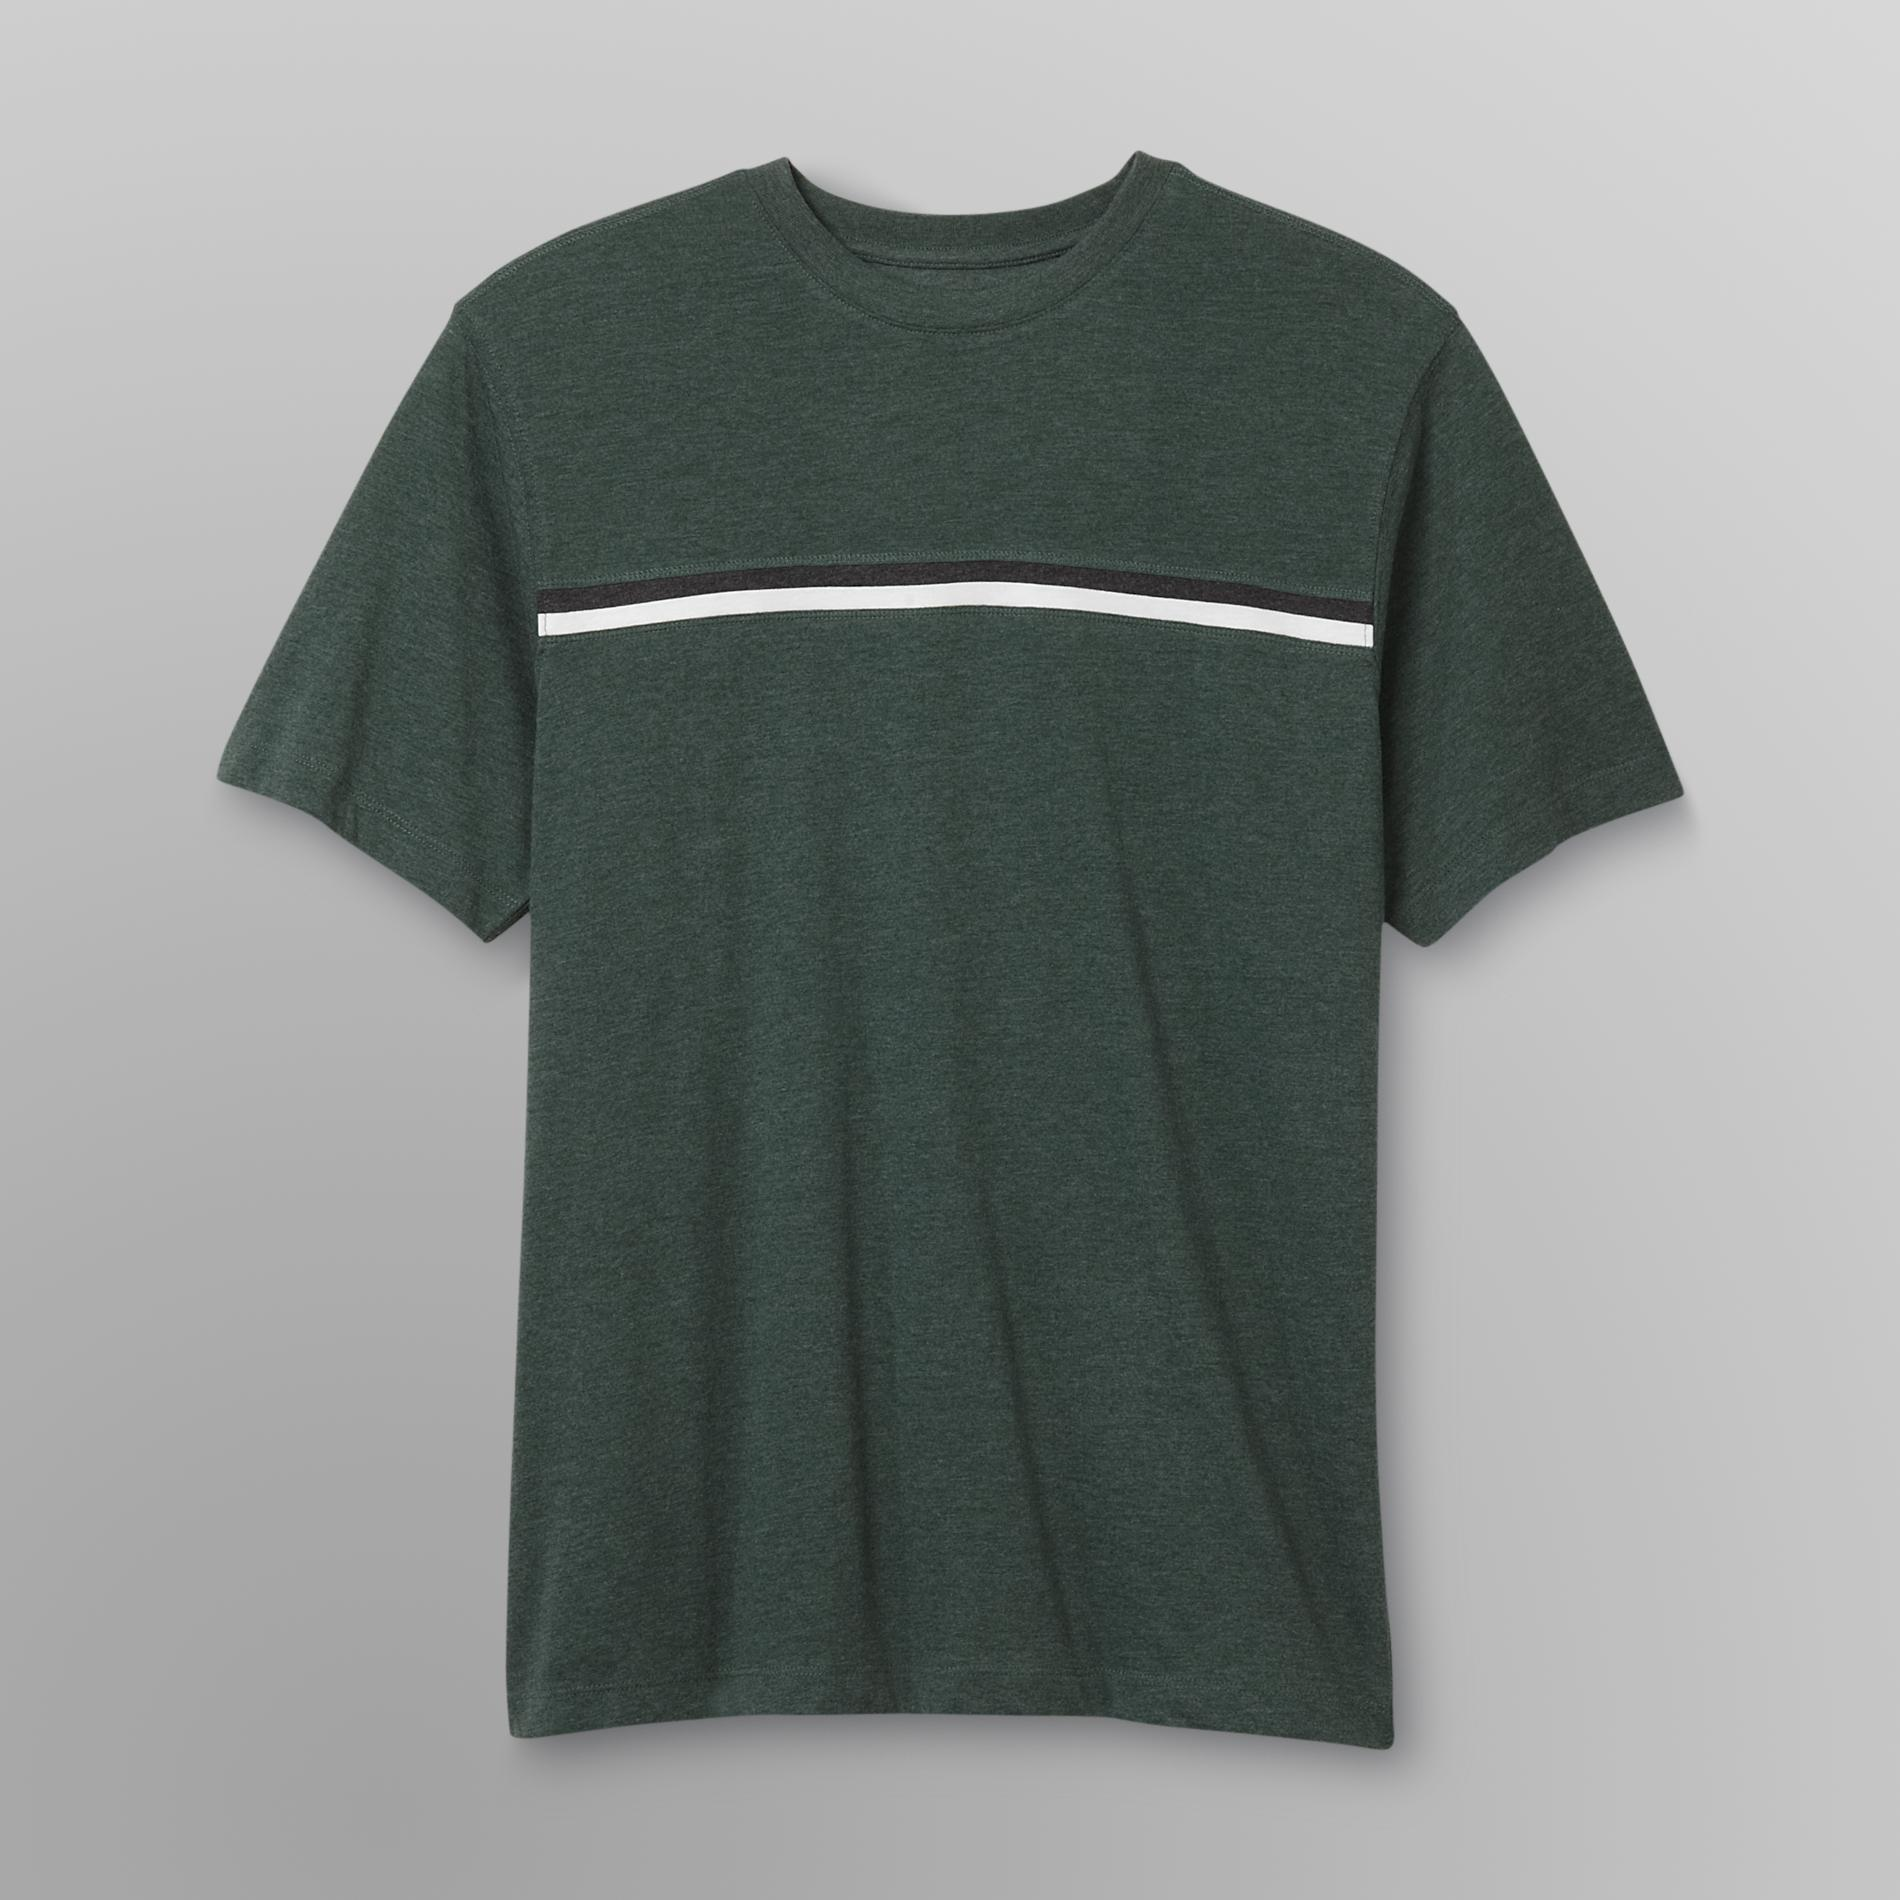 Basic Editions Men's T-Shirt - Striped at Kmart.com